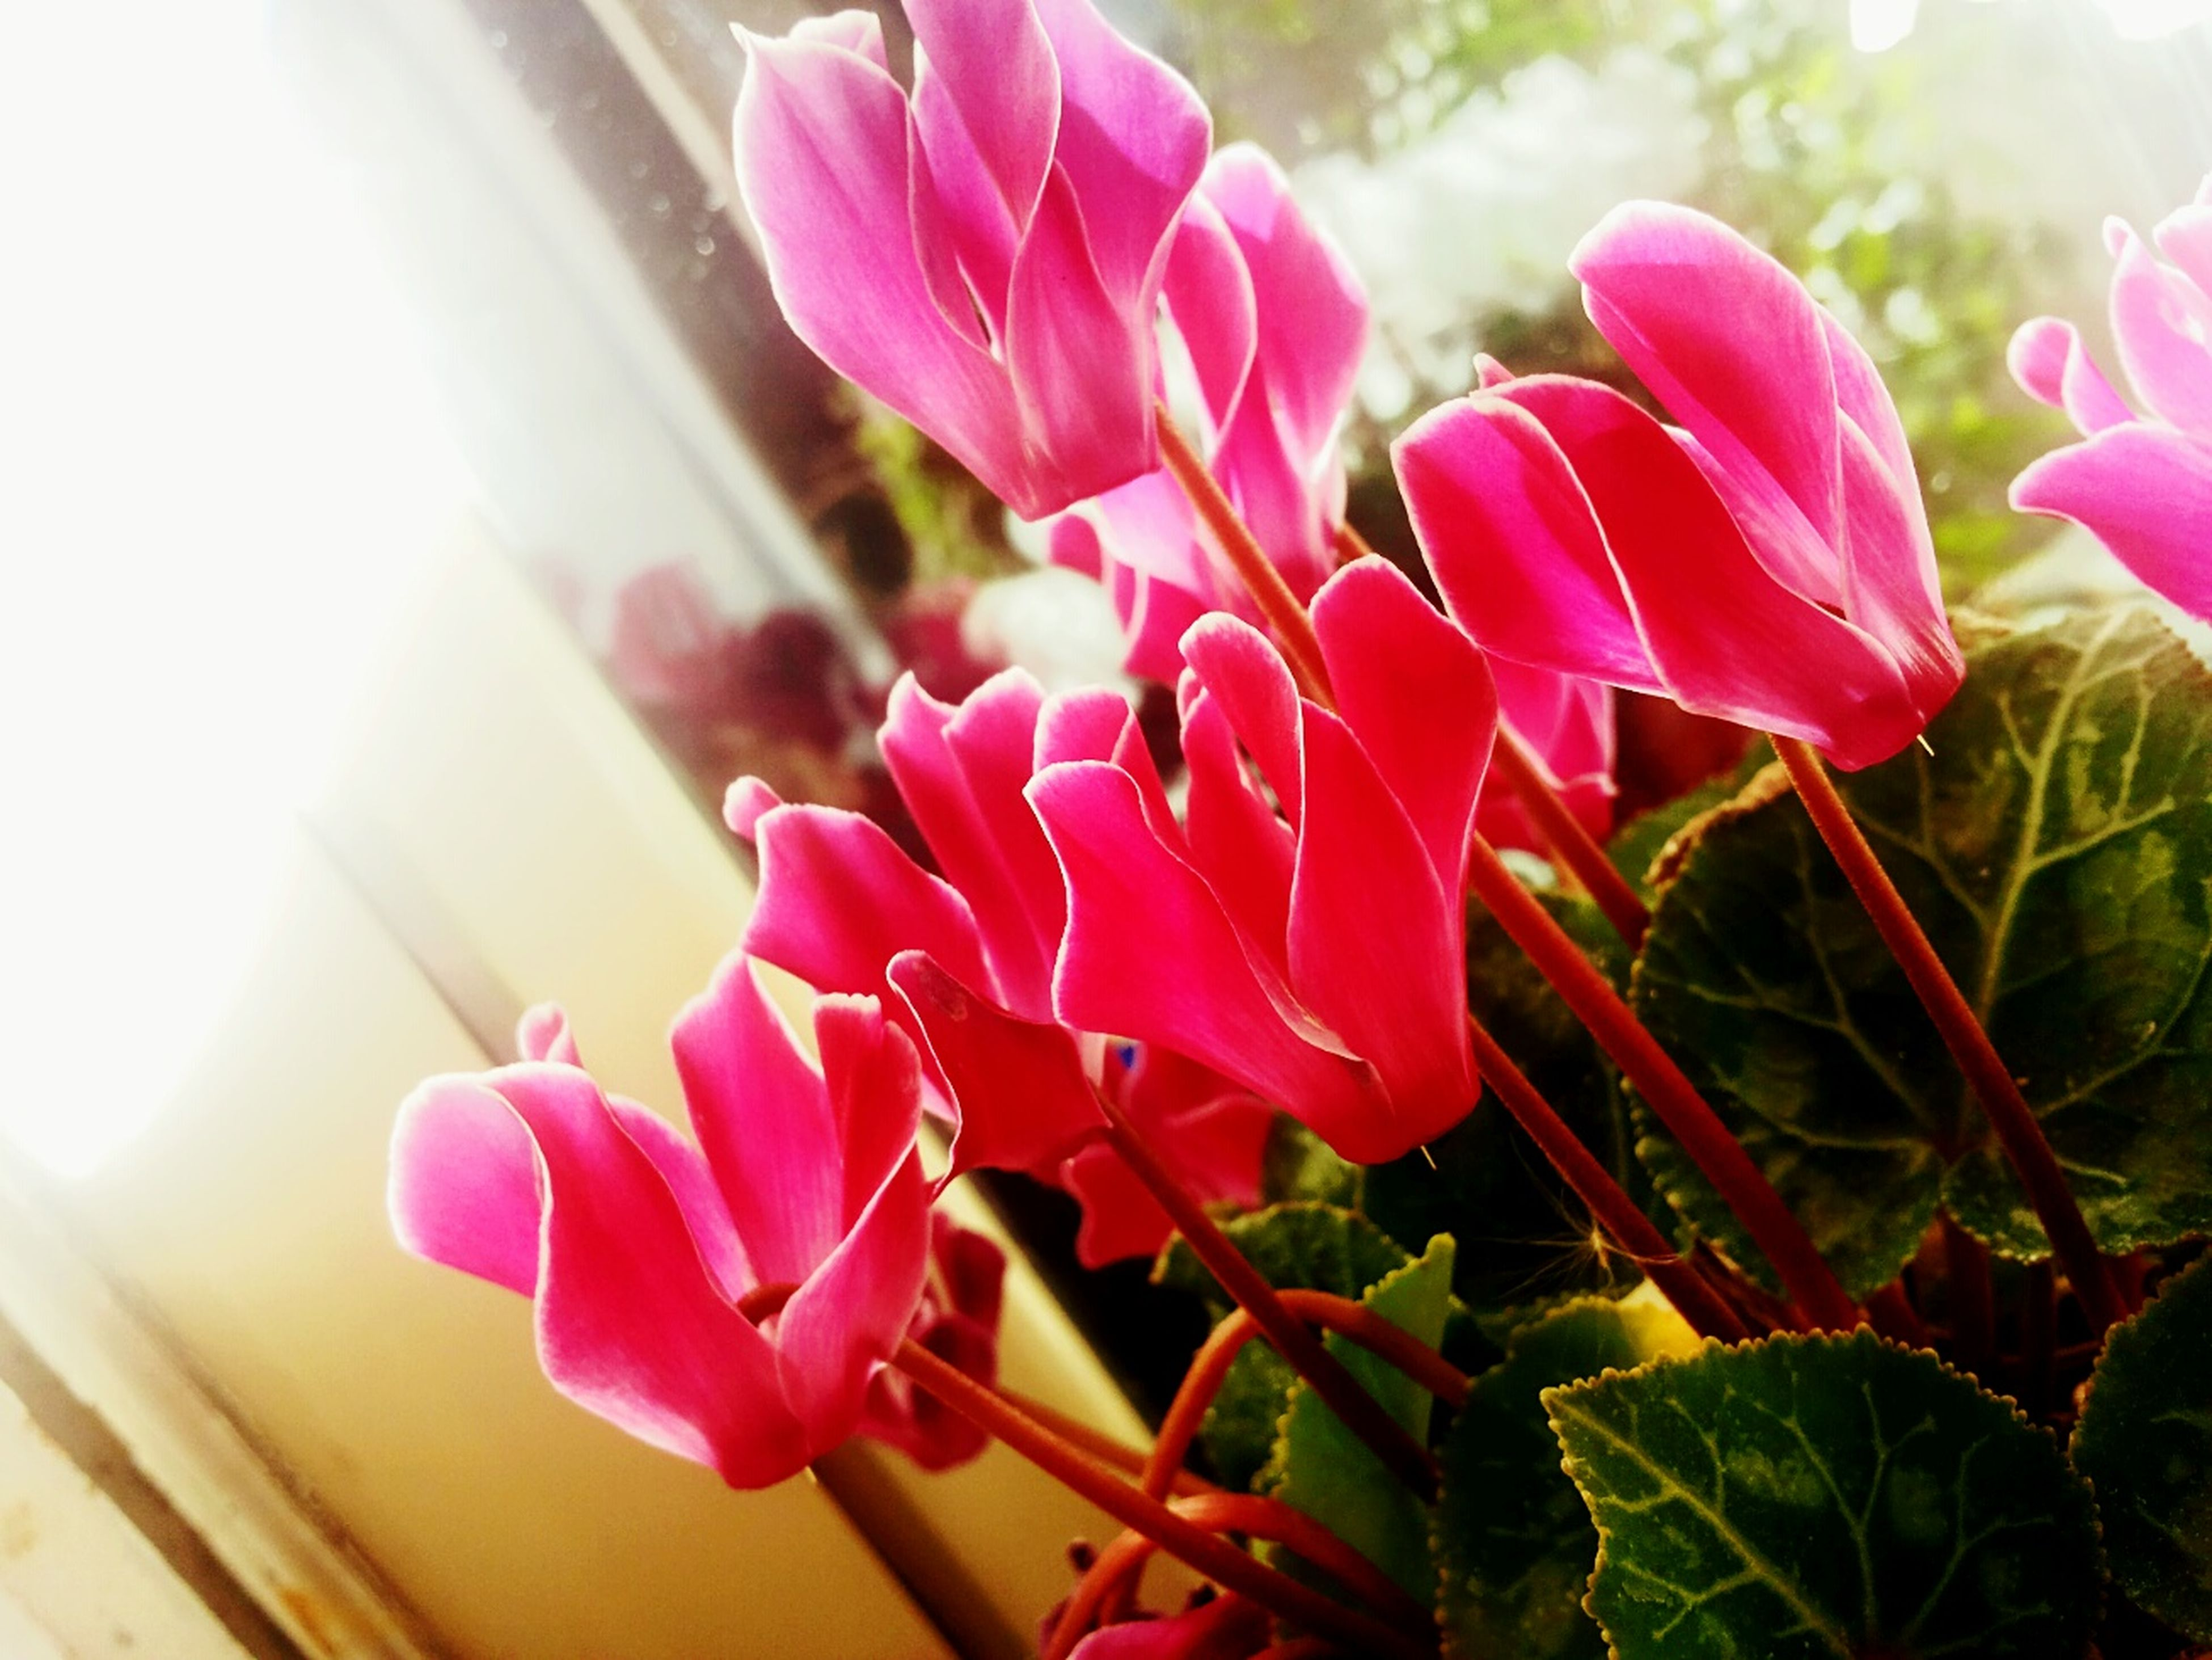 flower, petal, freshness, fragility, pink color, flower head, beauty in nature, growth, close-up, focus on foreground, nature, blooming, plant, indoors, pink, in bloom, stem, leaf, day, blossom